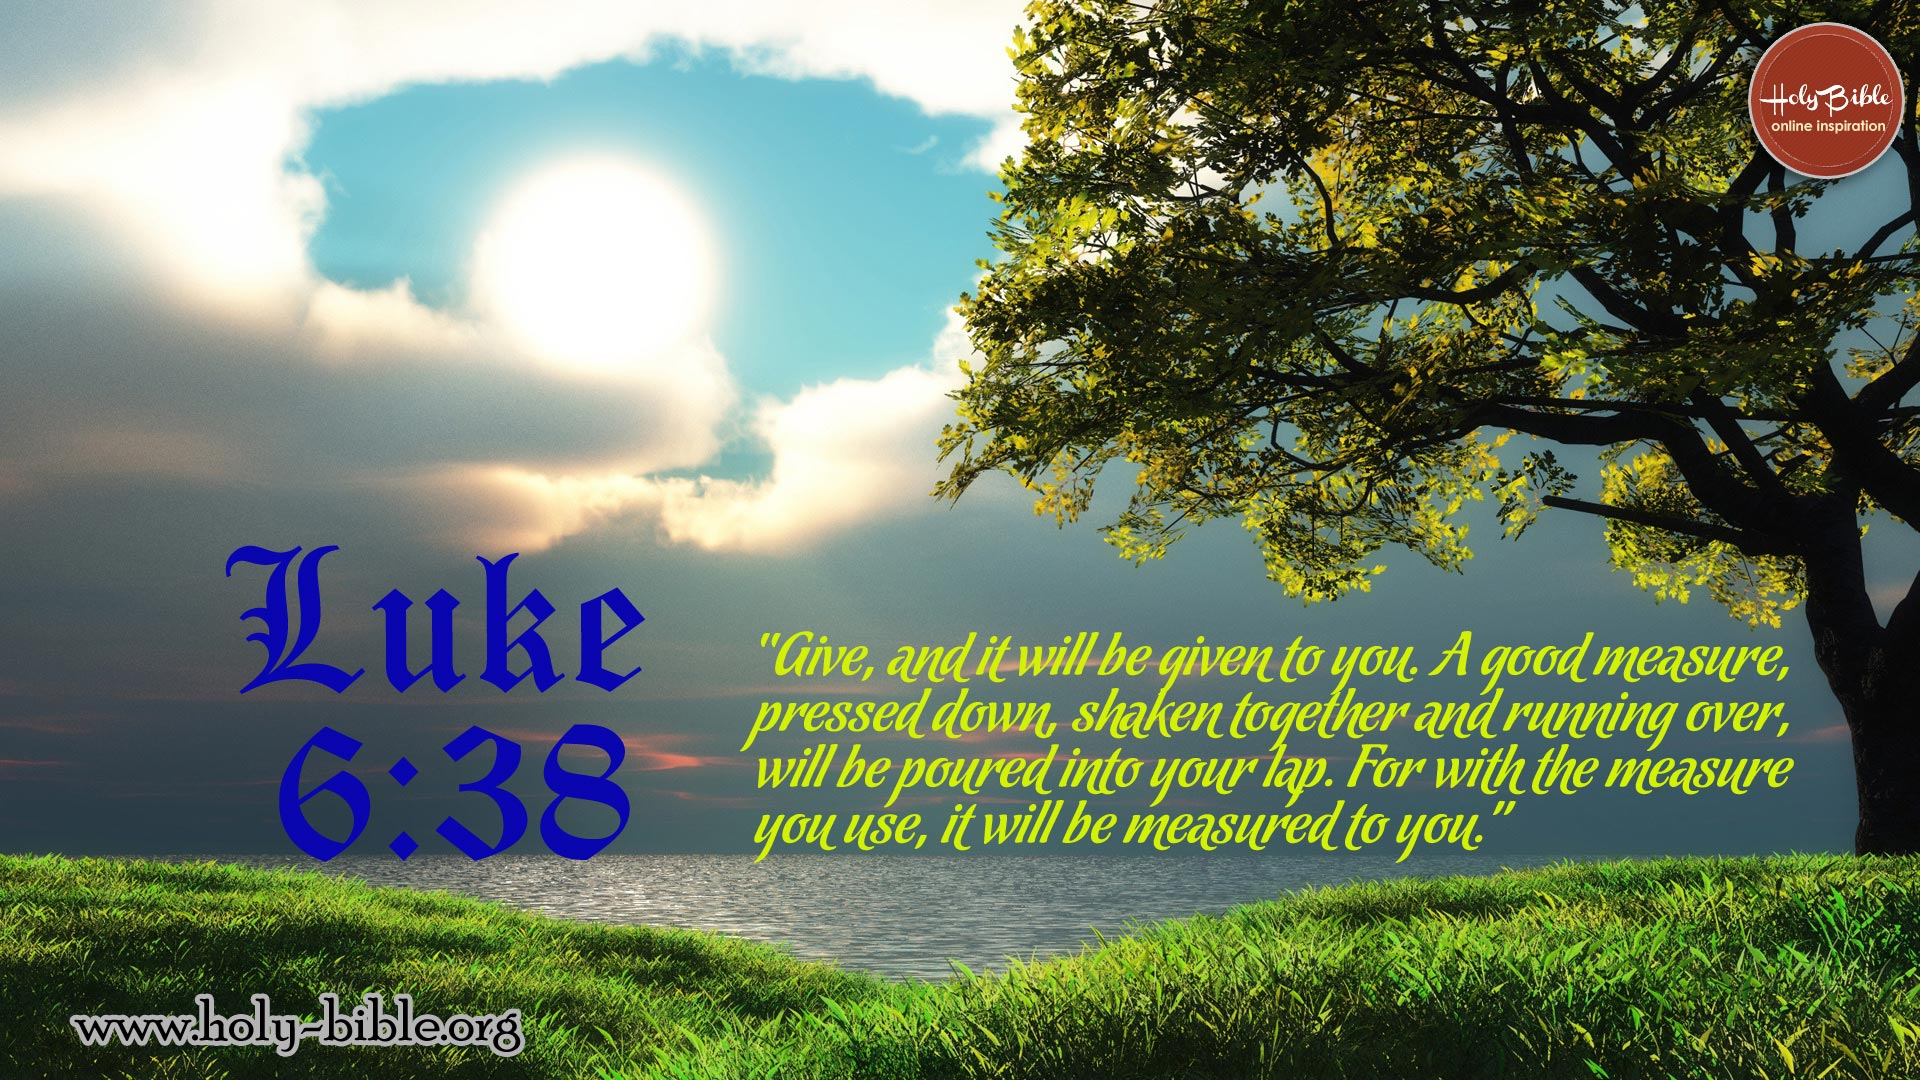 Bible Verse of the day - Luke 6:38